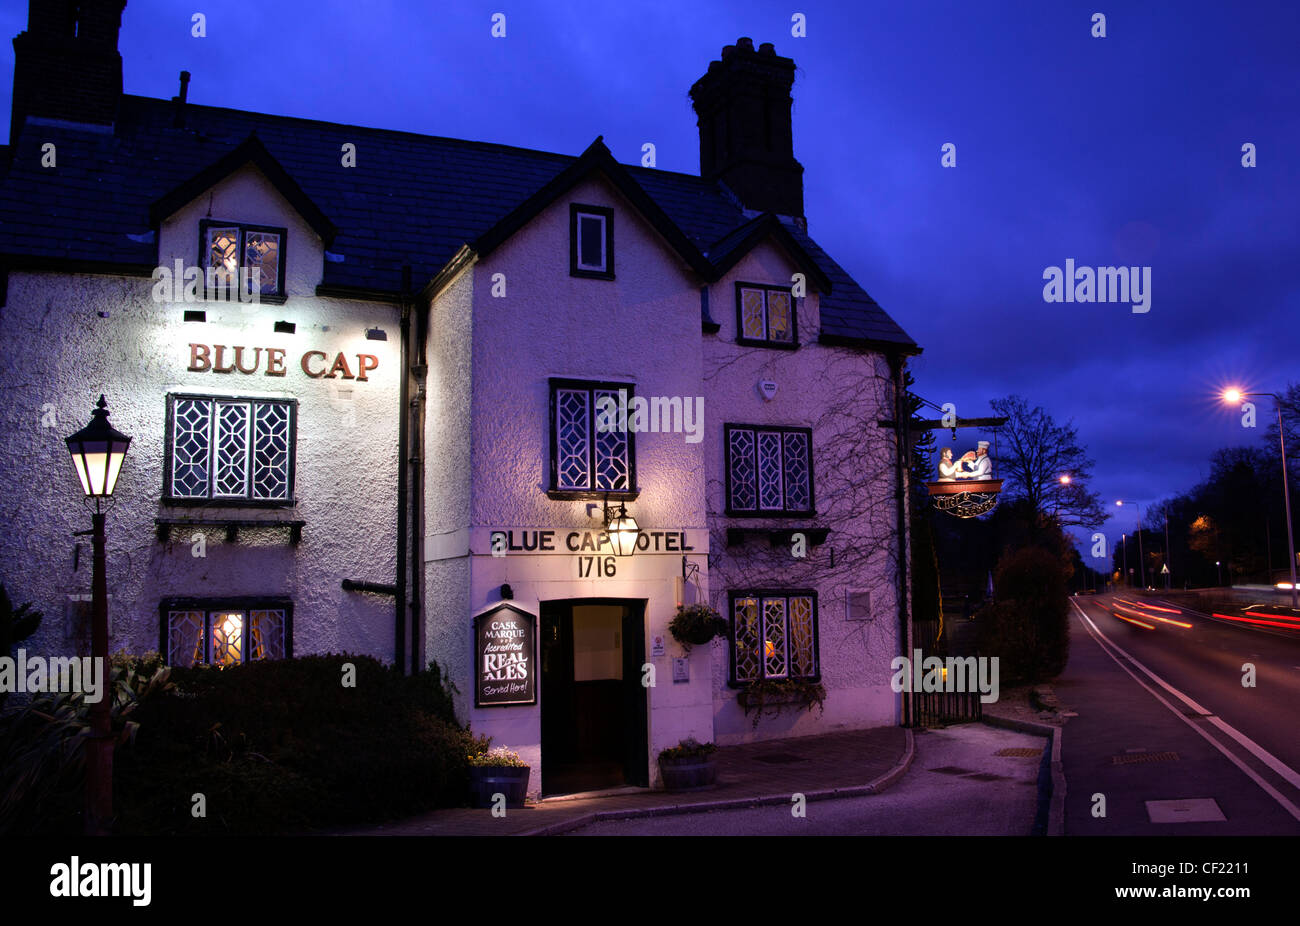 Blue Cap historic Pub and drinking place A556 at Dusk , Cheshire , England, United Kingdom Stock Photo